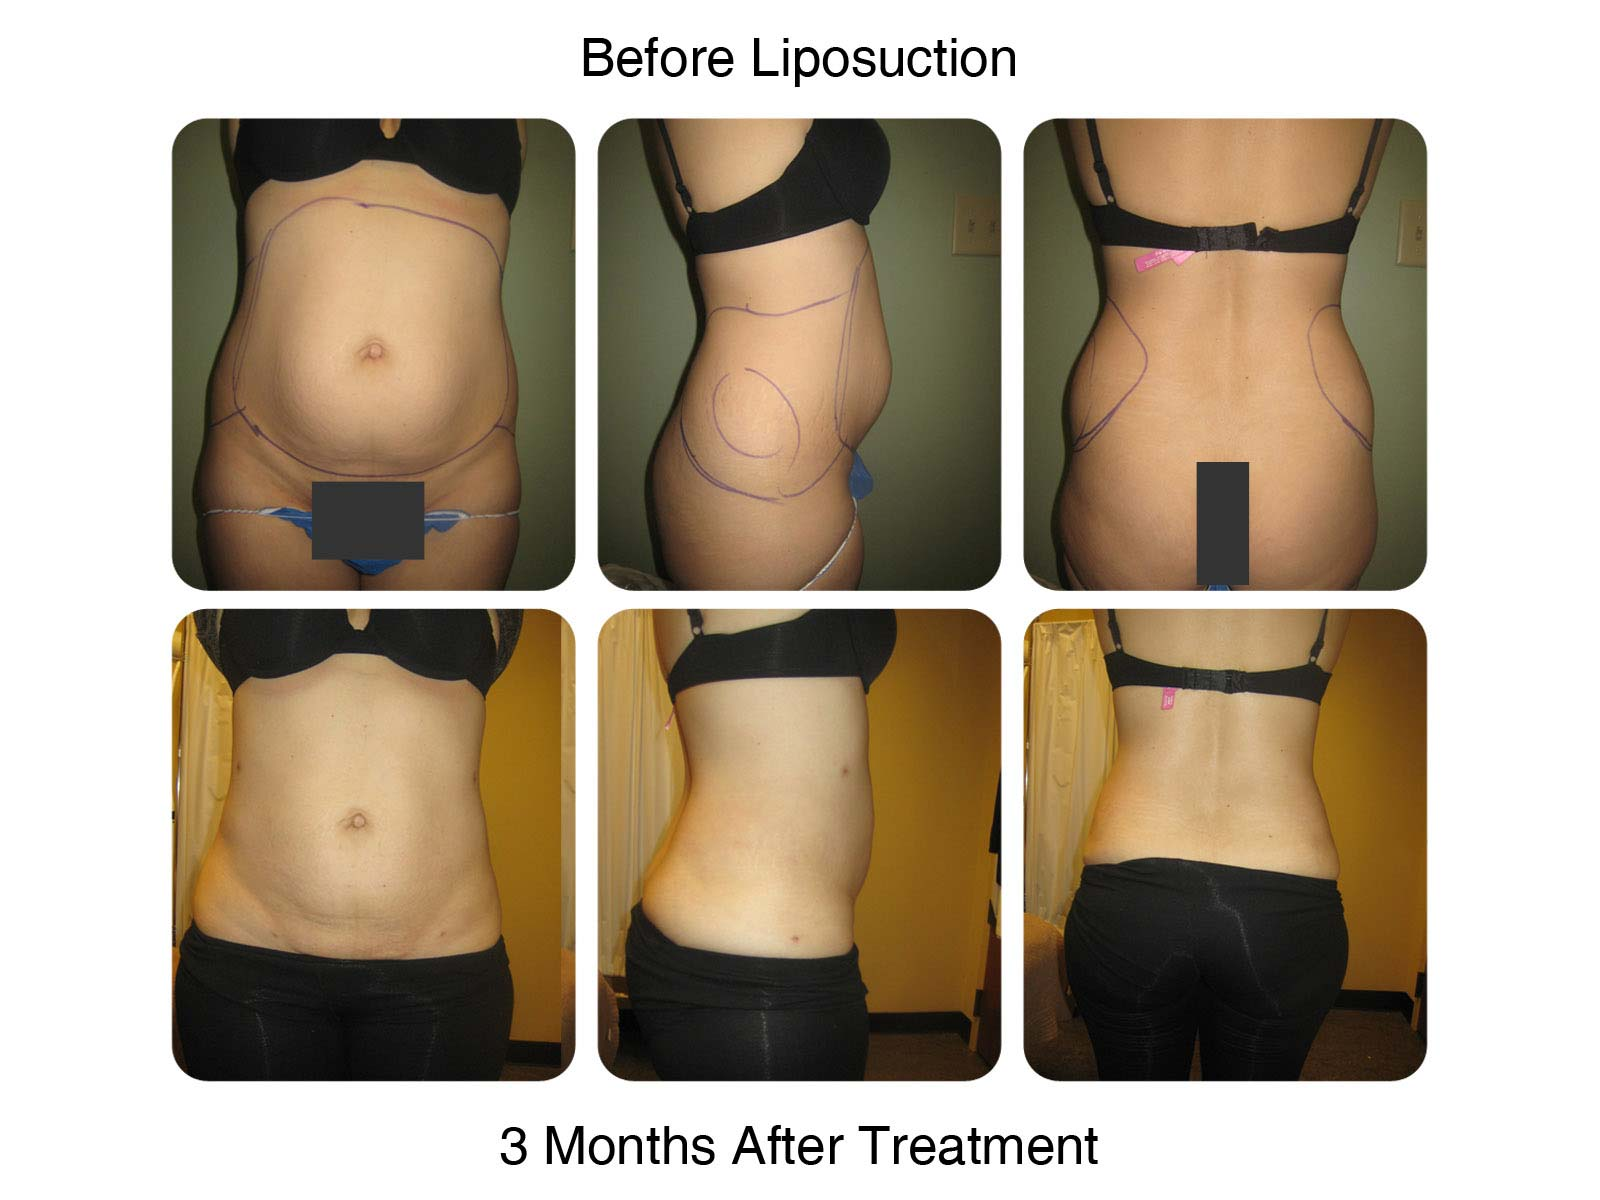 Before Lipo and and 3 Months After